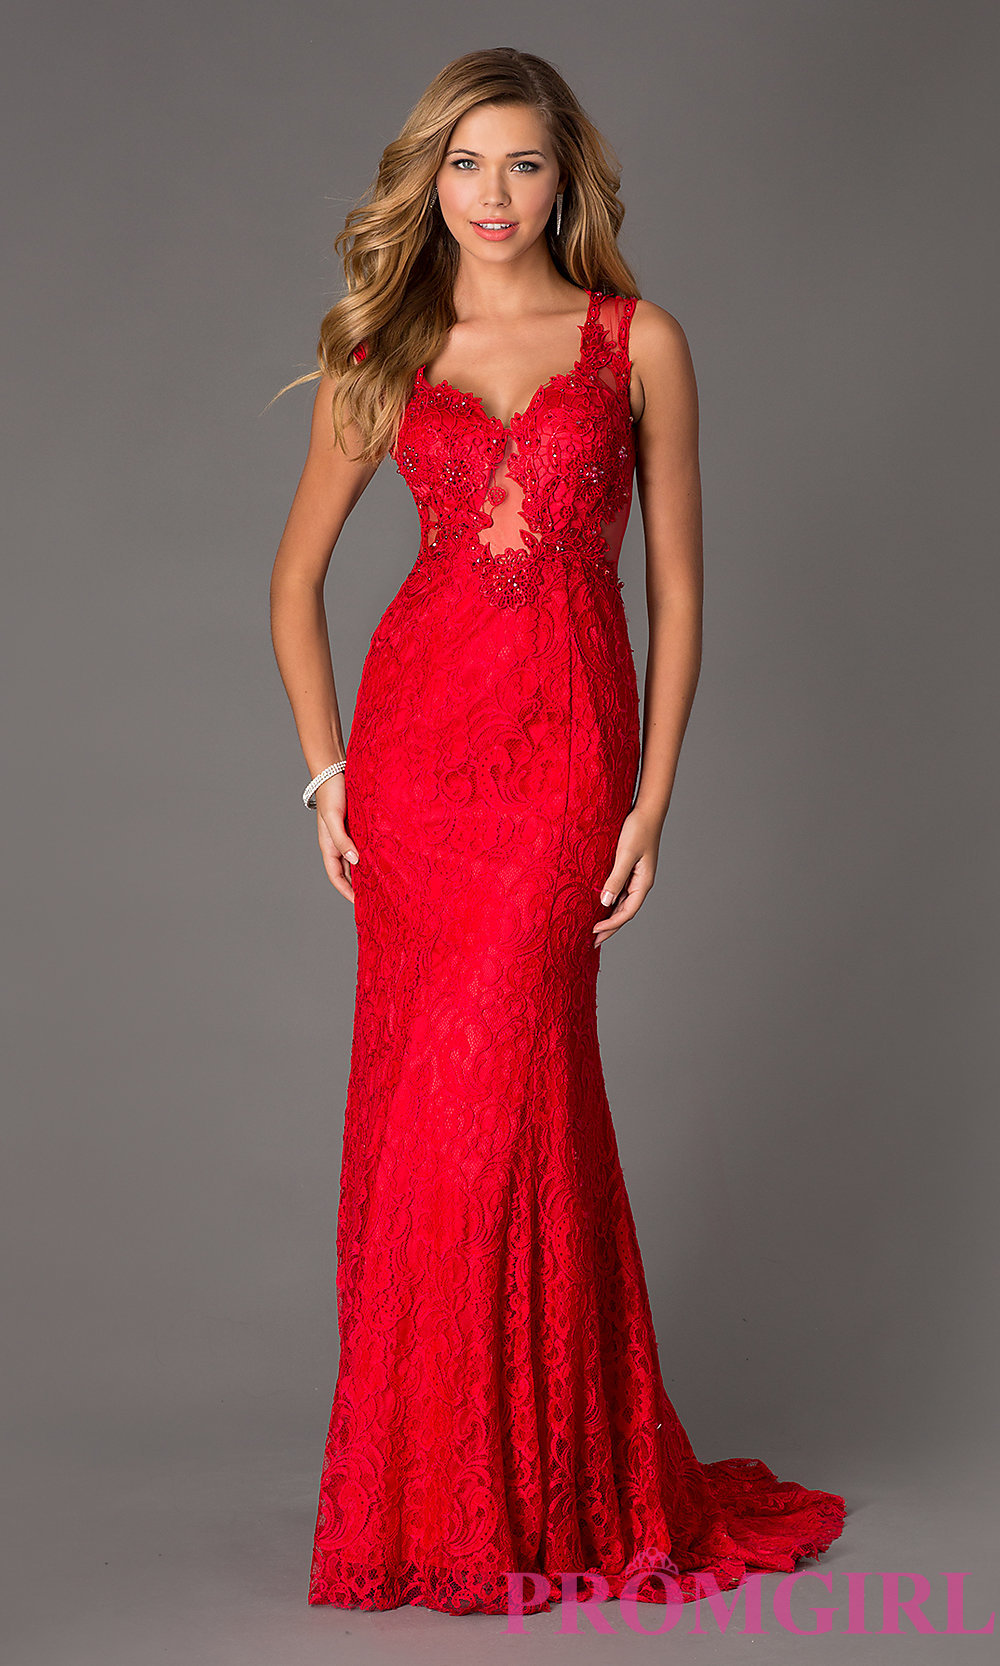 Significance of a red prom dress